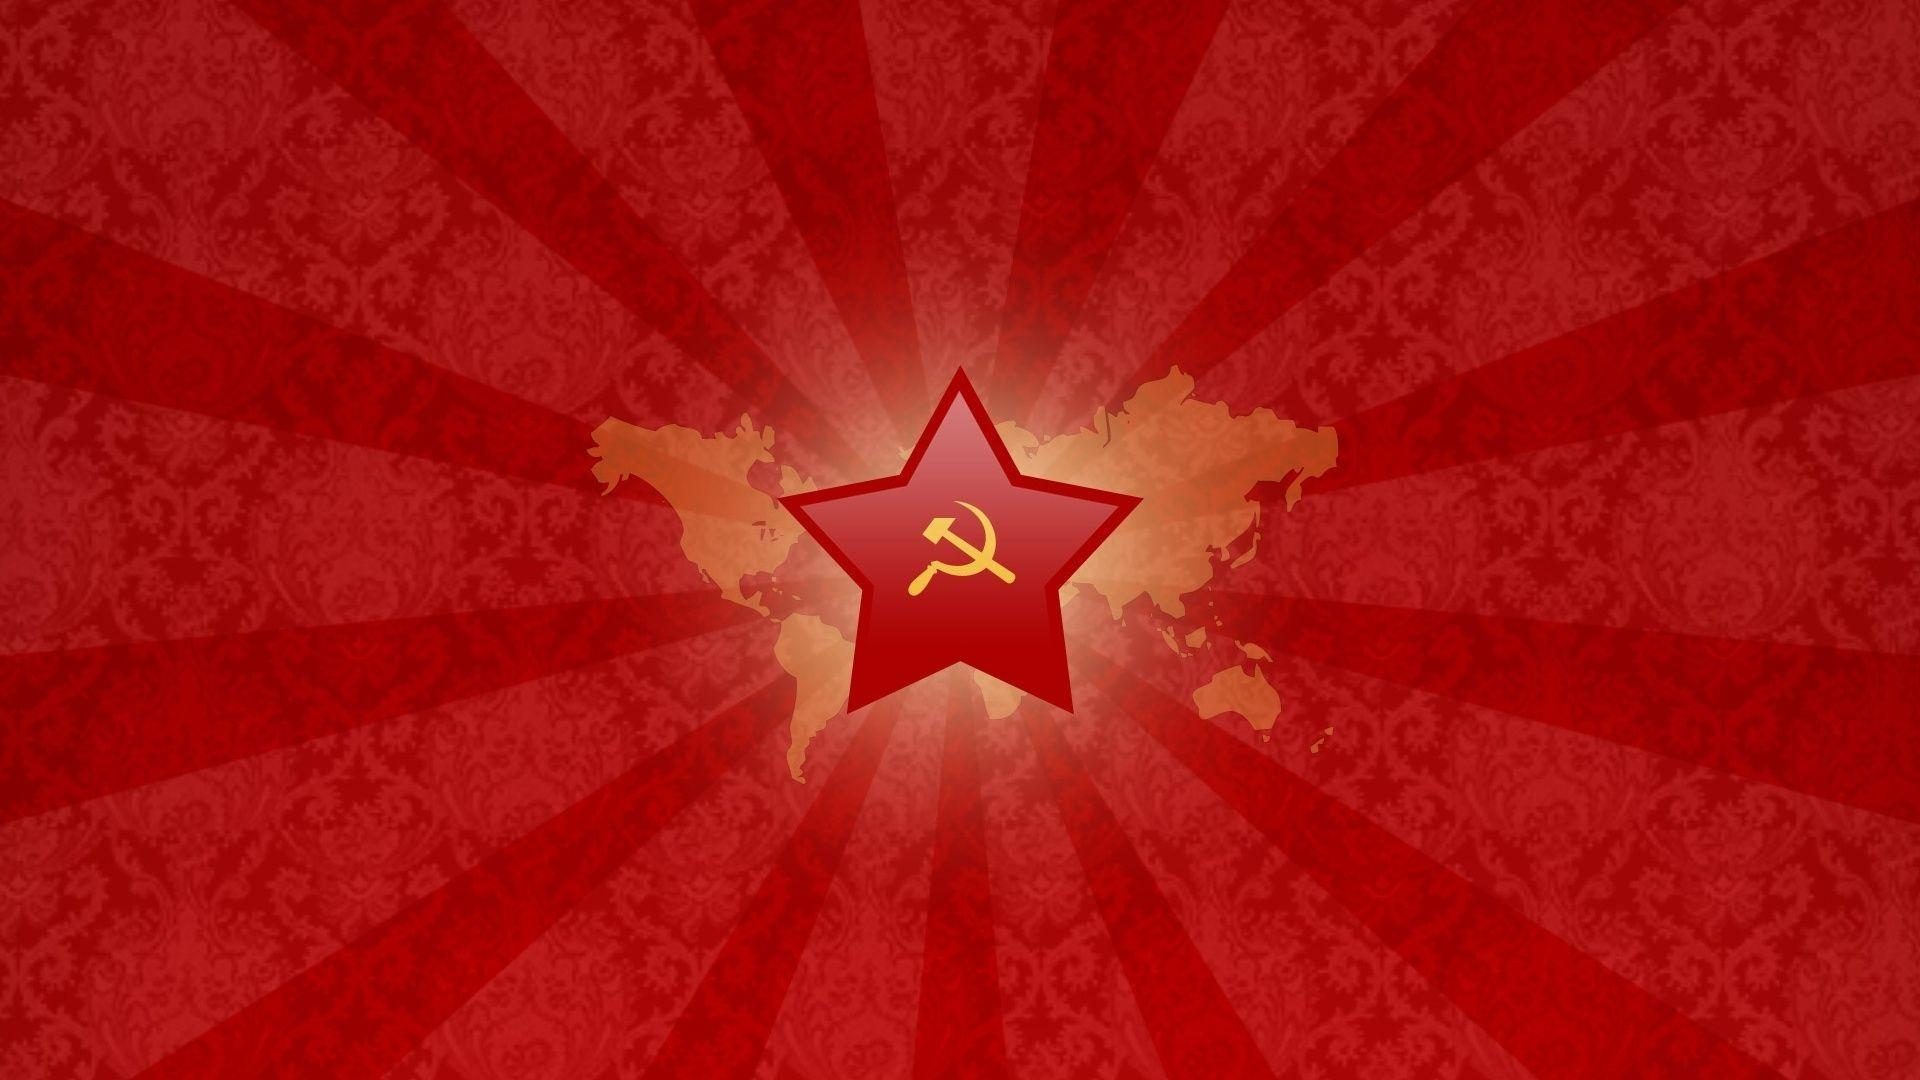 Soviet Union Wallpapers Hd